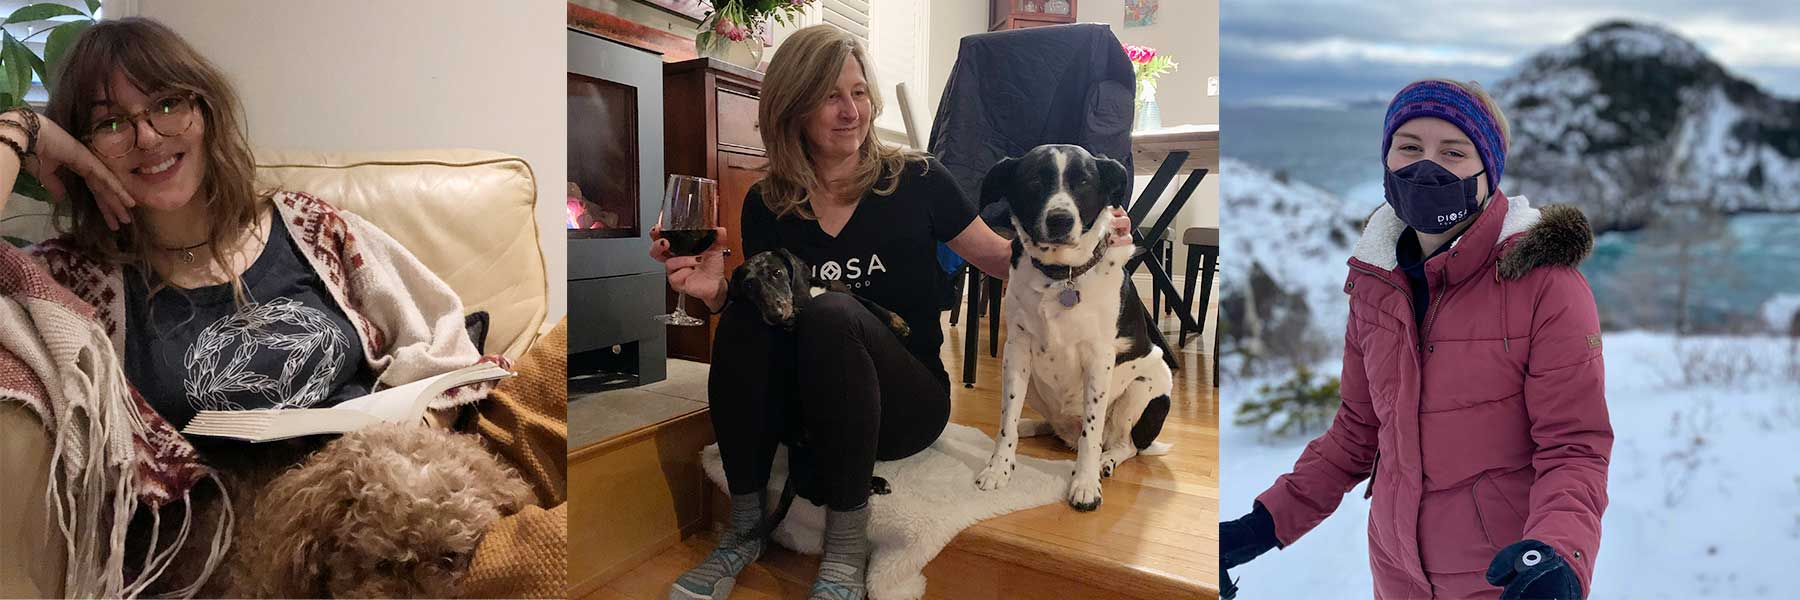 DIOSAs living their best hygge life. Jade in an armchair with the DIOSA flow tee. Kim with her dog wearing the DIOSA for Good t-shirt. Katie snowshoeing wearing the DIOSA for Good mask.